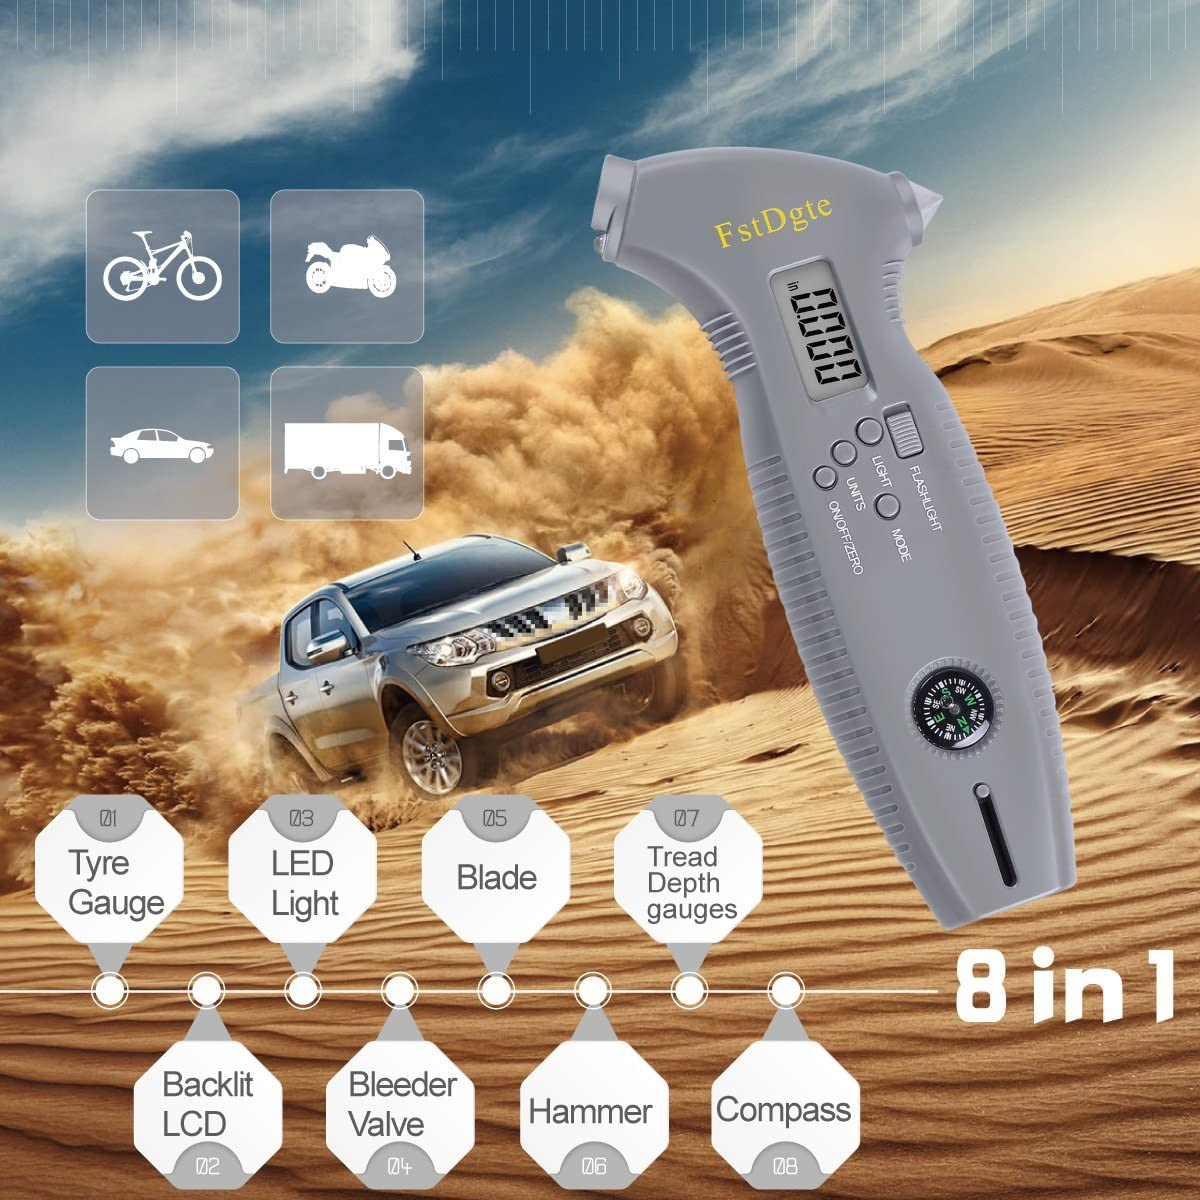 8 in 1 Digital Tyre Pressure Gauge for Bike,Motorcycle,Car Etc,with Backlit LCD and LED Light for Night,Bleeder Valve,Blade,Hammer,Tread Depth//Pressure Measurement Conversion,Compass Etc,Lifetime Warranty